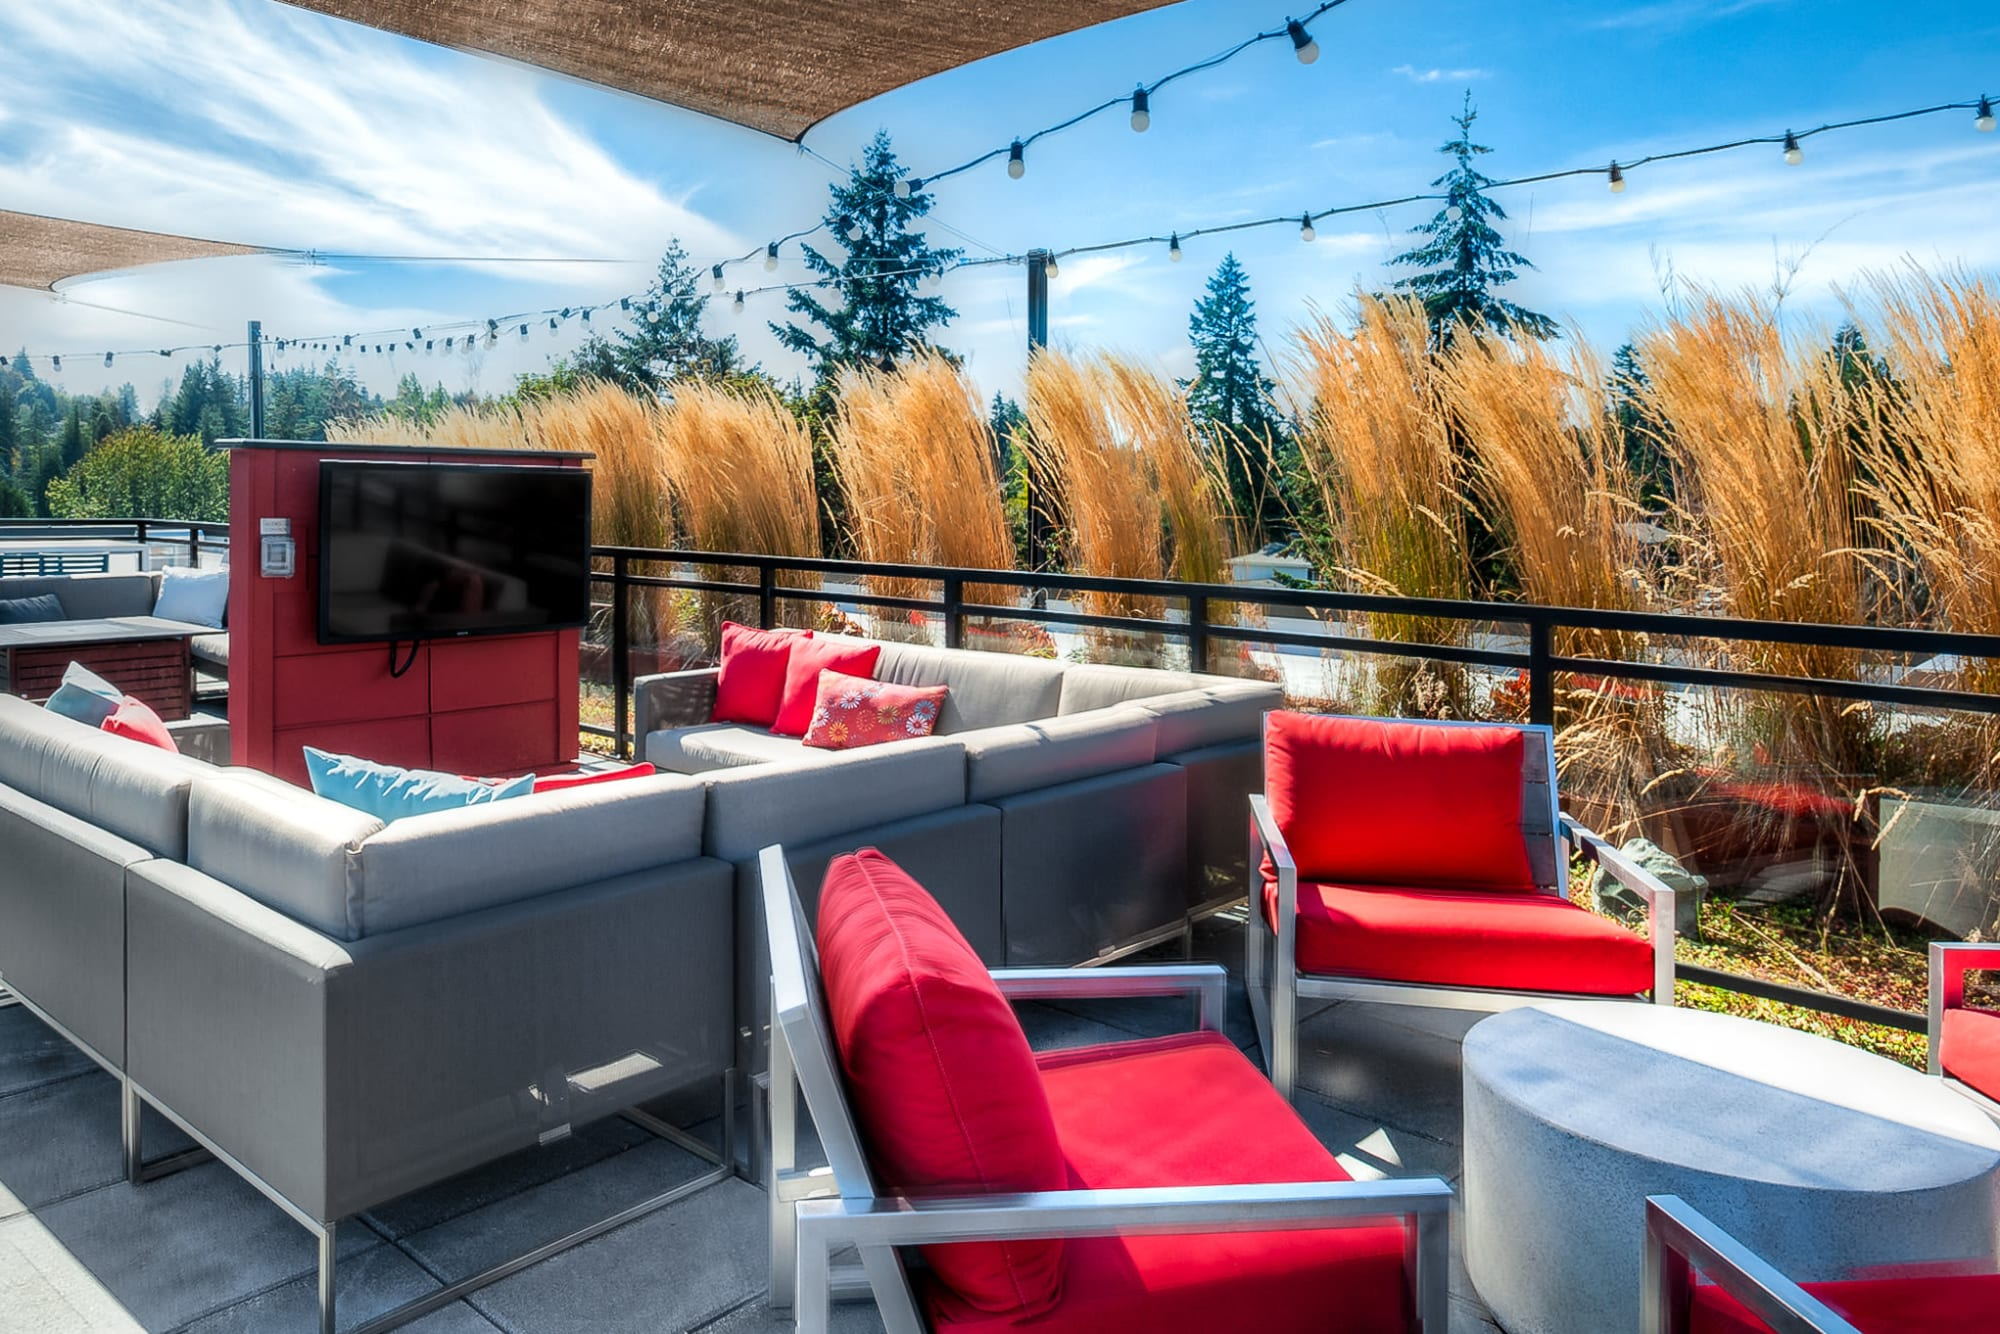 Another view of the rooftop lounge at Tria Apartments in Newcastle, Washington